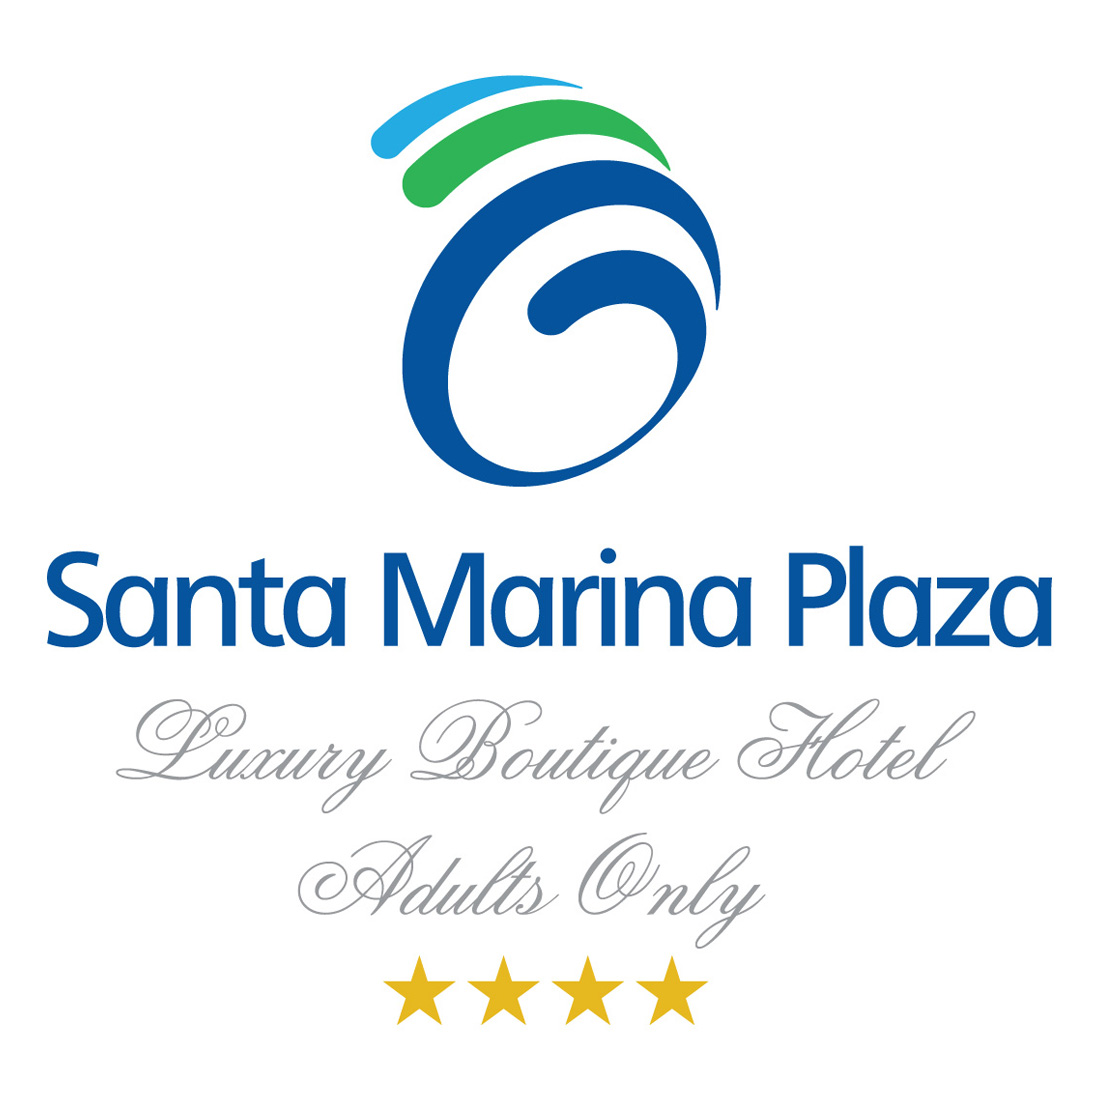 Santa Marina Plaza Luxury Boutique Hotel